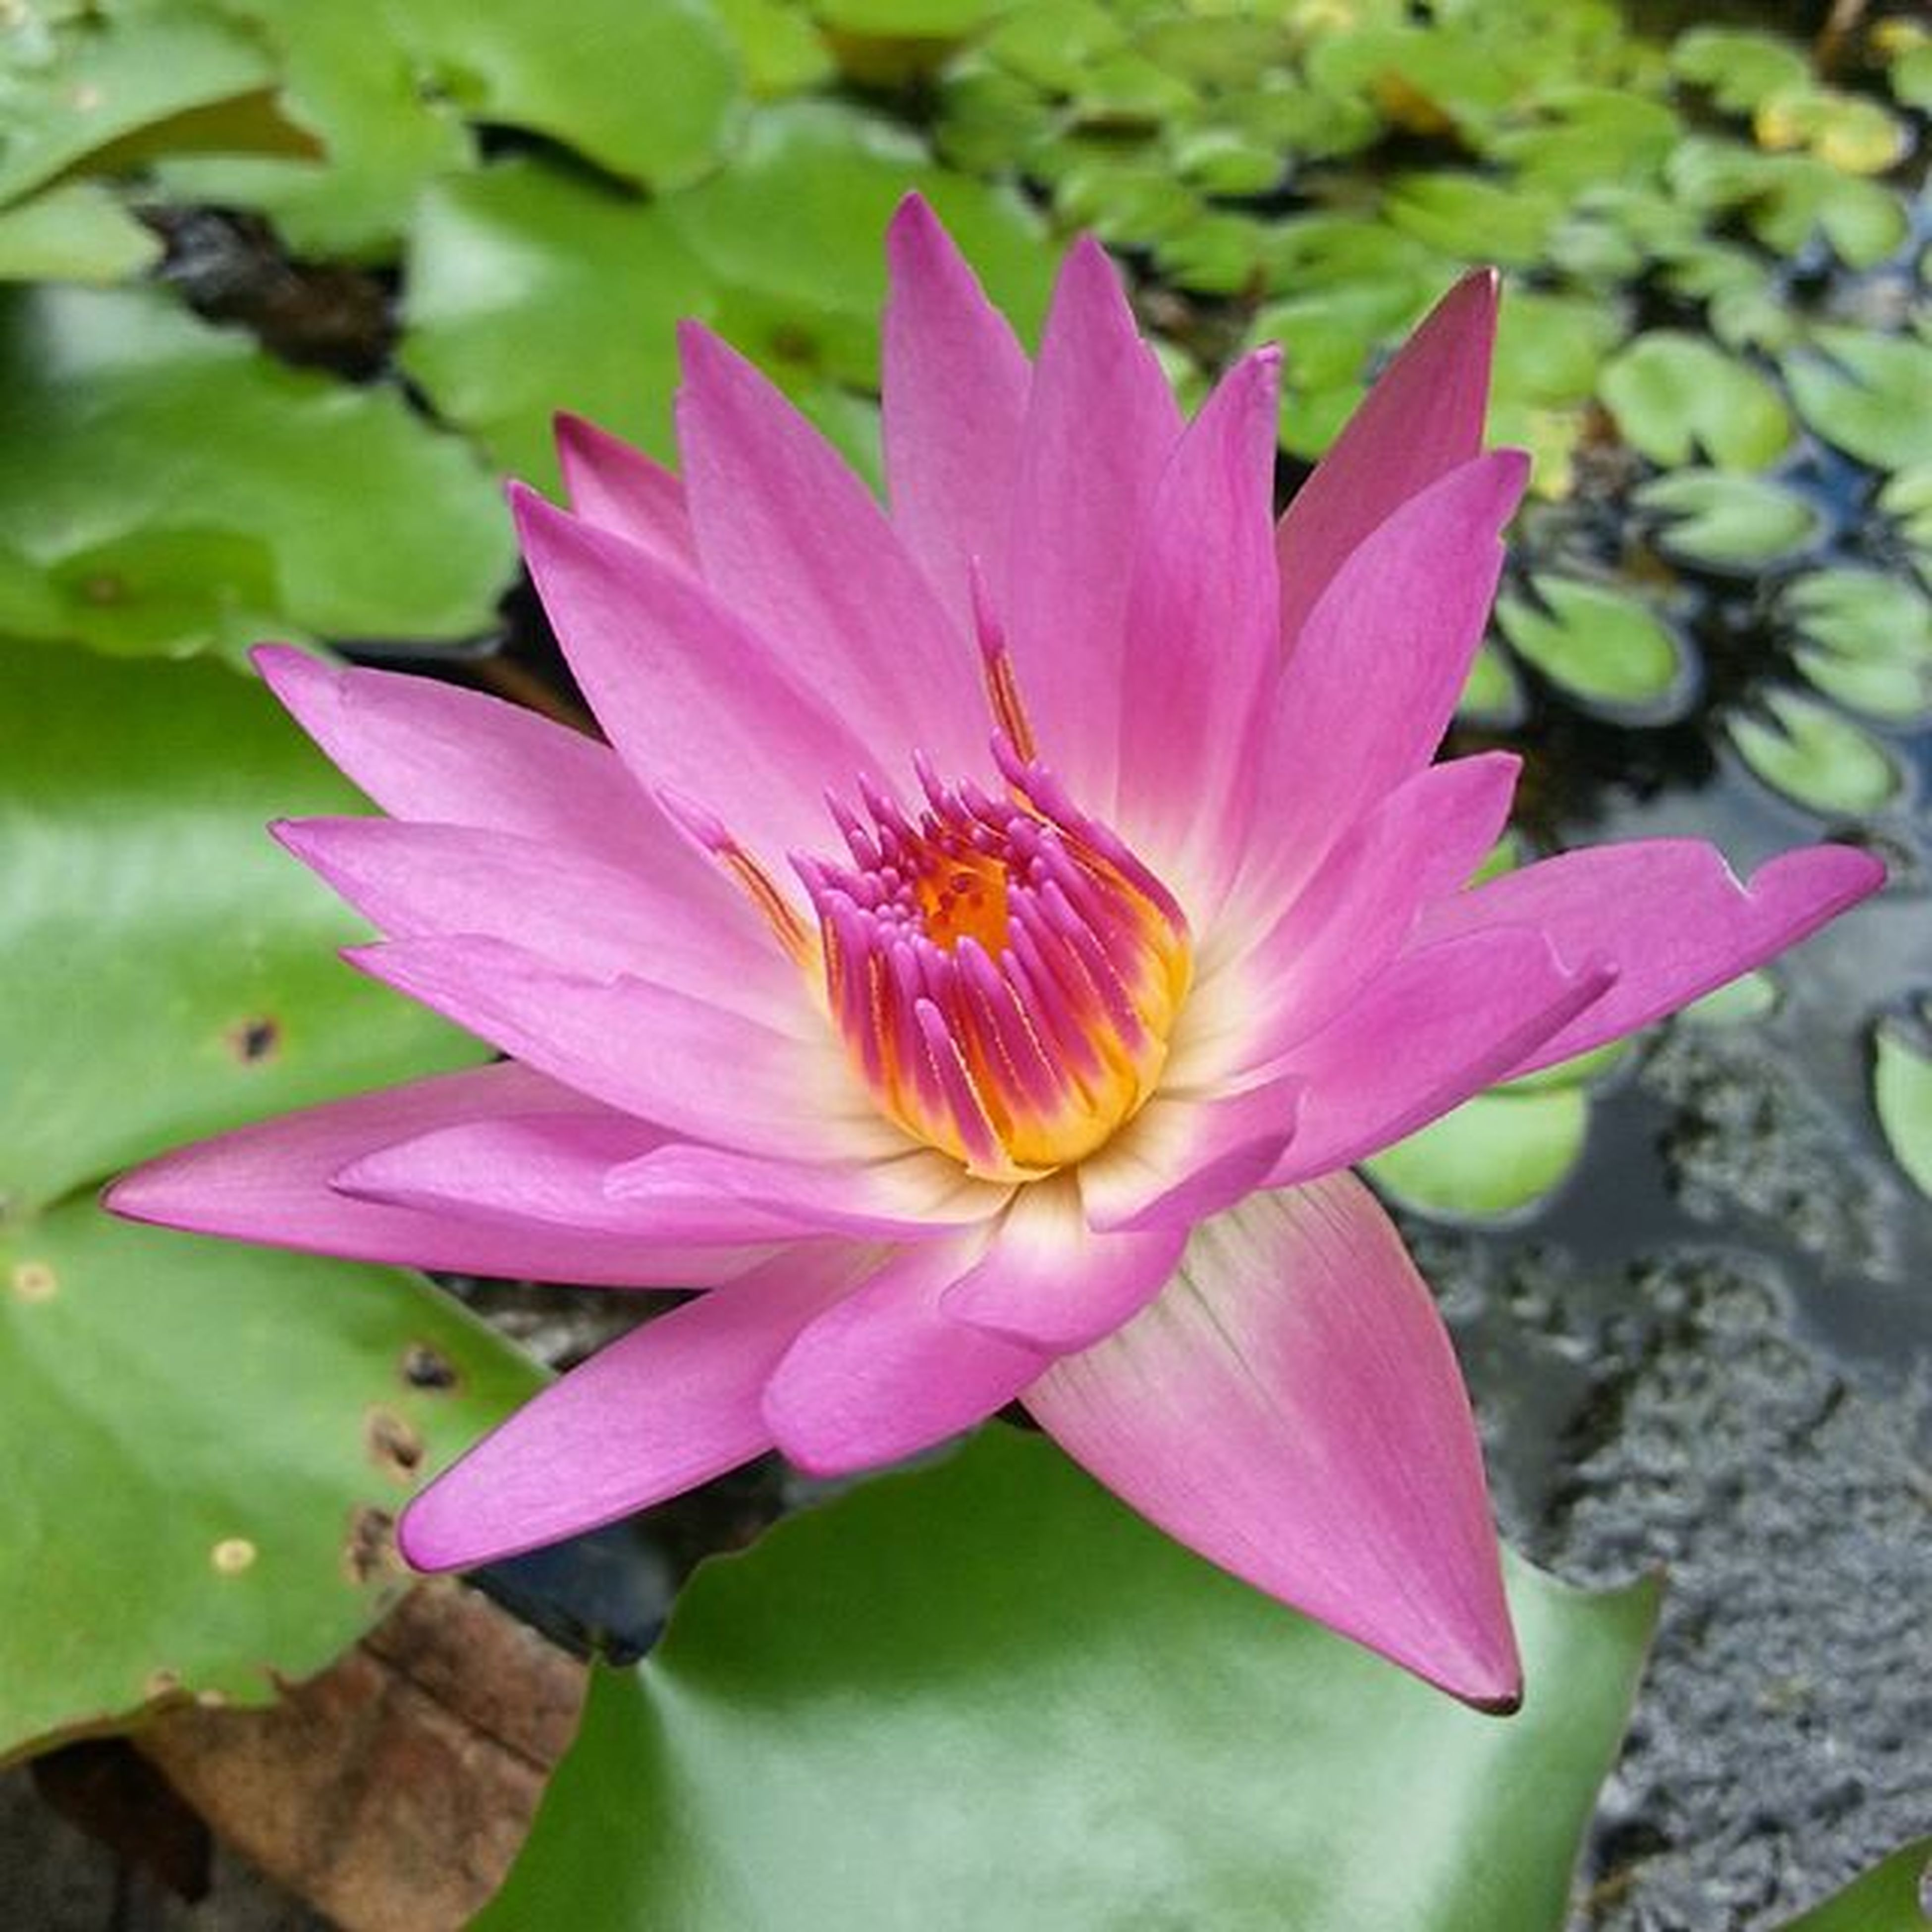 flower, petal, freshness, fragility, flower head, pink color, water lily, growth, beauty in nature, leaf, single flower, pond, nature, close-up, plant, blooming, lotus water lily, water, in bloom, focus on foreground